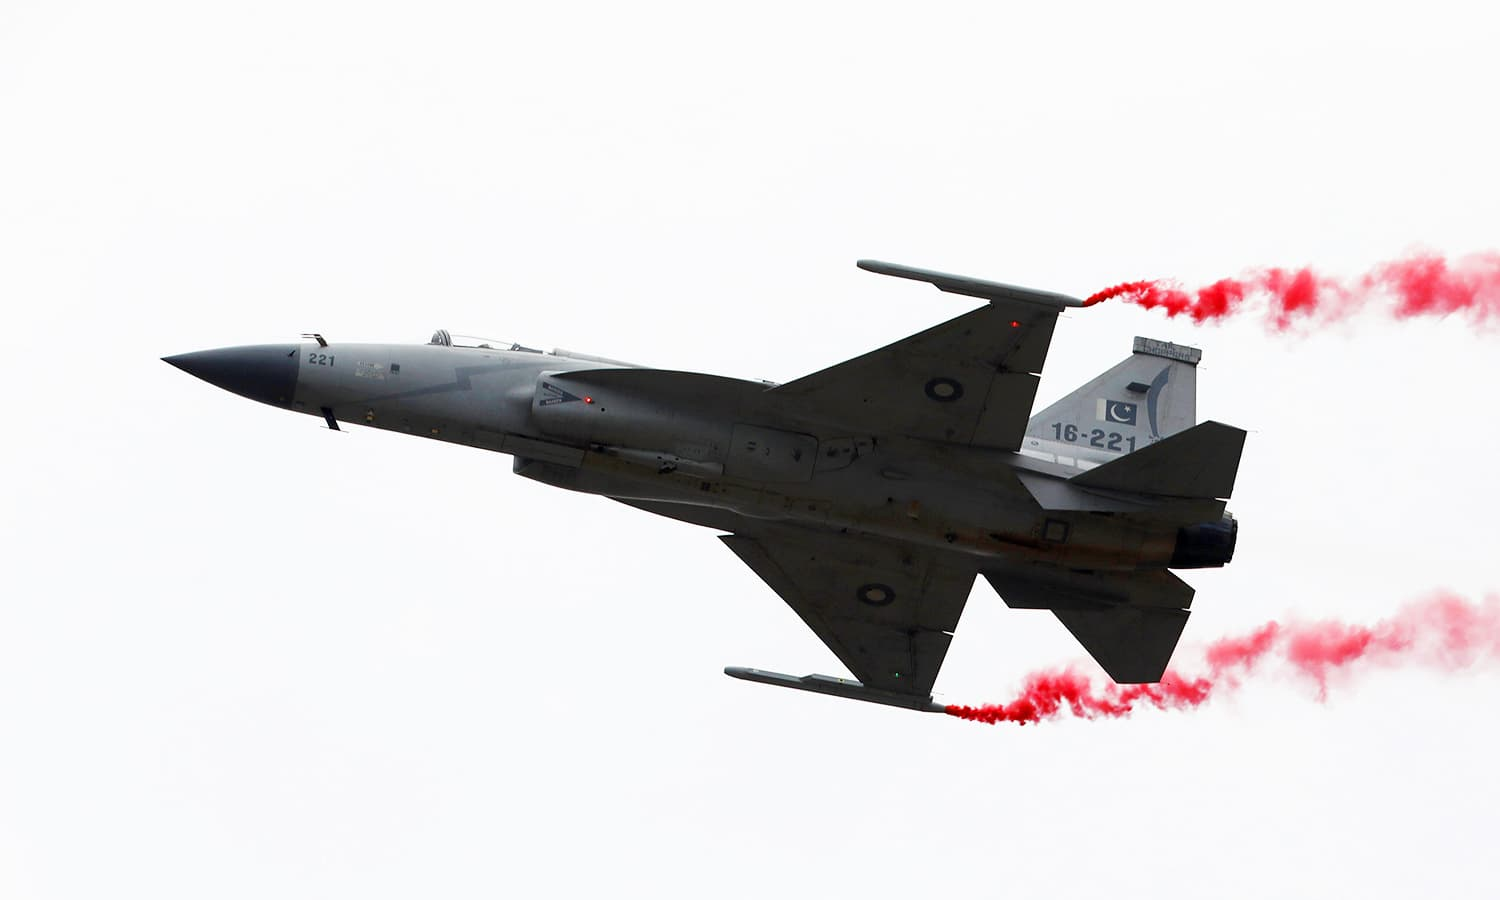 A PAF JF-17 Thunder jet performs during the Pakistan Day military parade in Islamabad on March 23, 2019. ─ Reuters